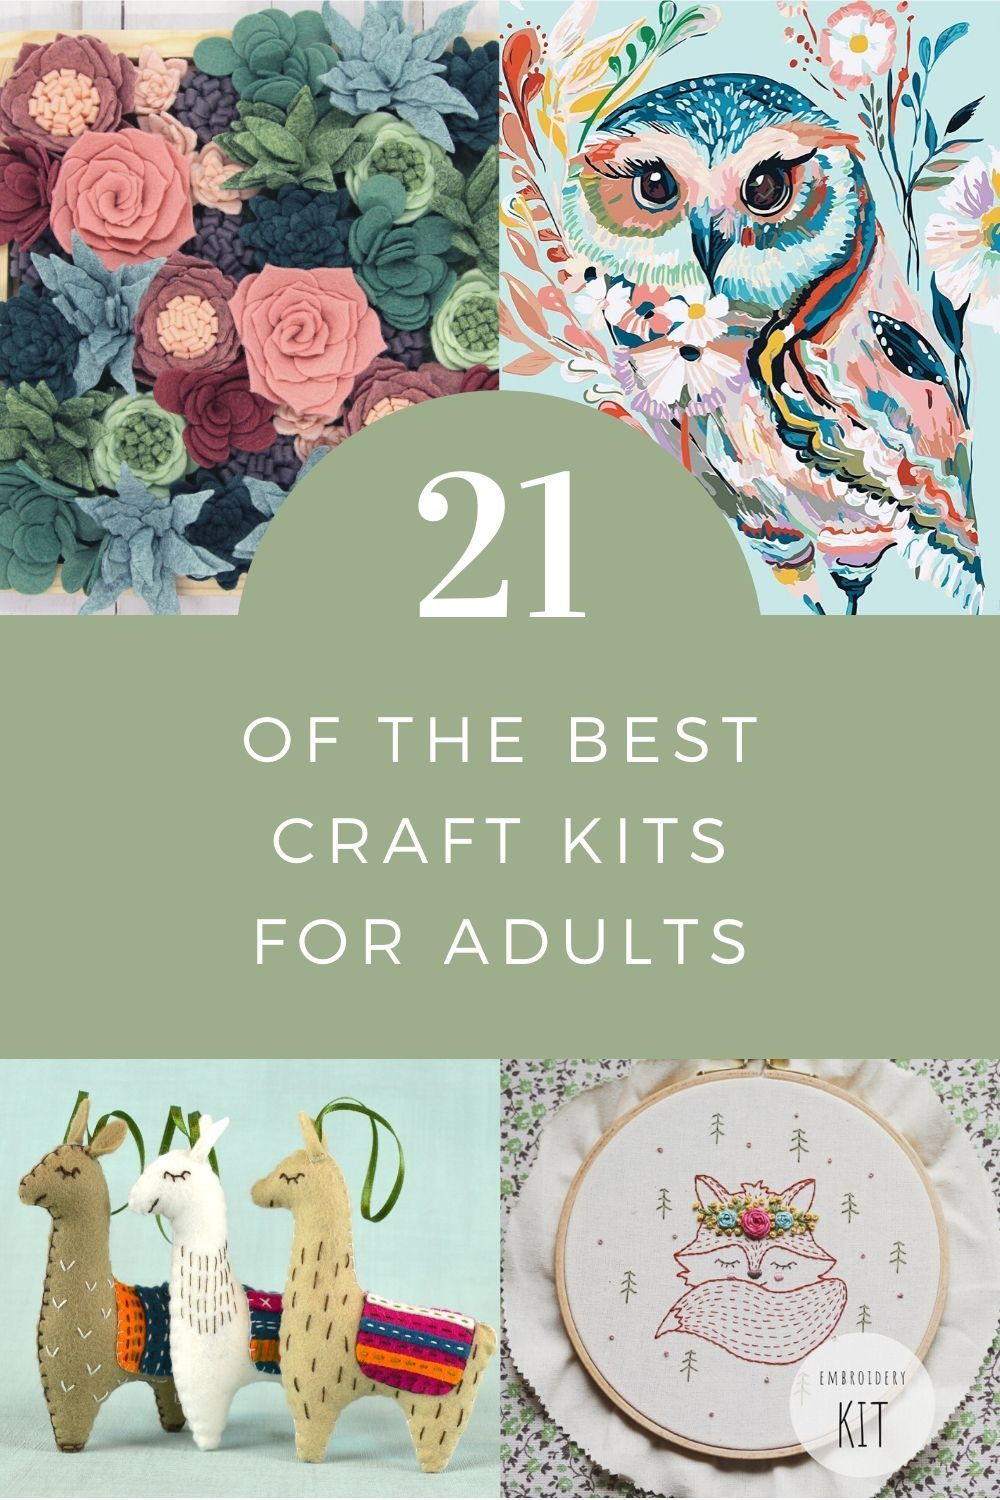 21 Of The Best Craft Kits For Adults In 2020 Arts And Crafts Kits Craft Kits Craft Kits For Kids